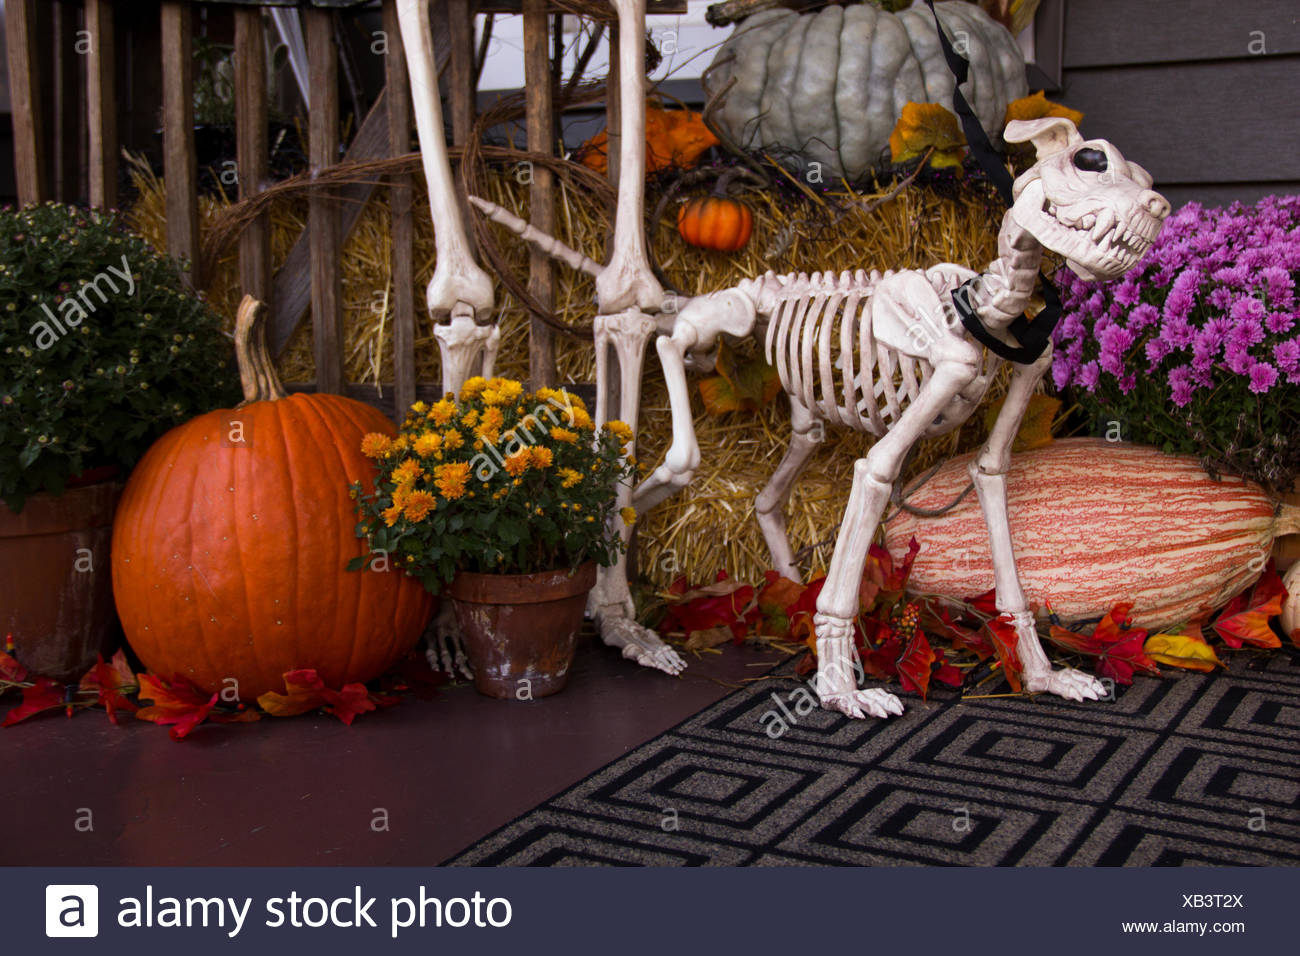 Halloween Decorations Include A Hungry Looking Dog Skeleton Stock